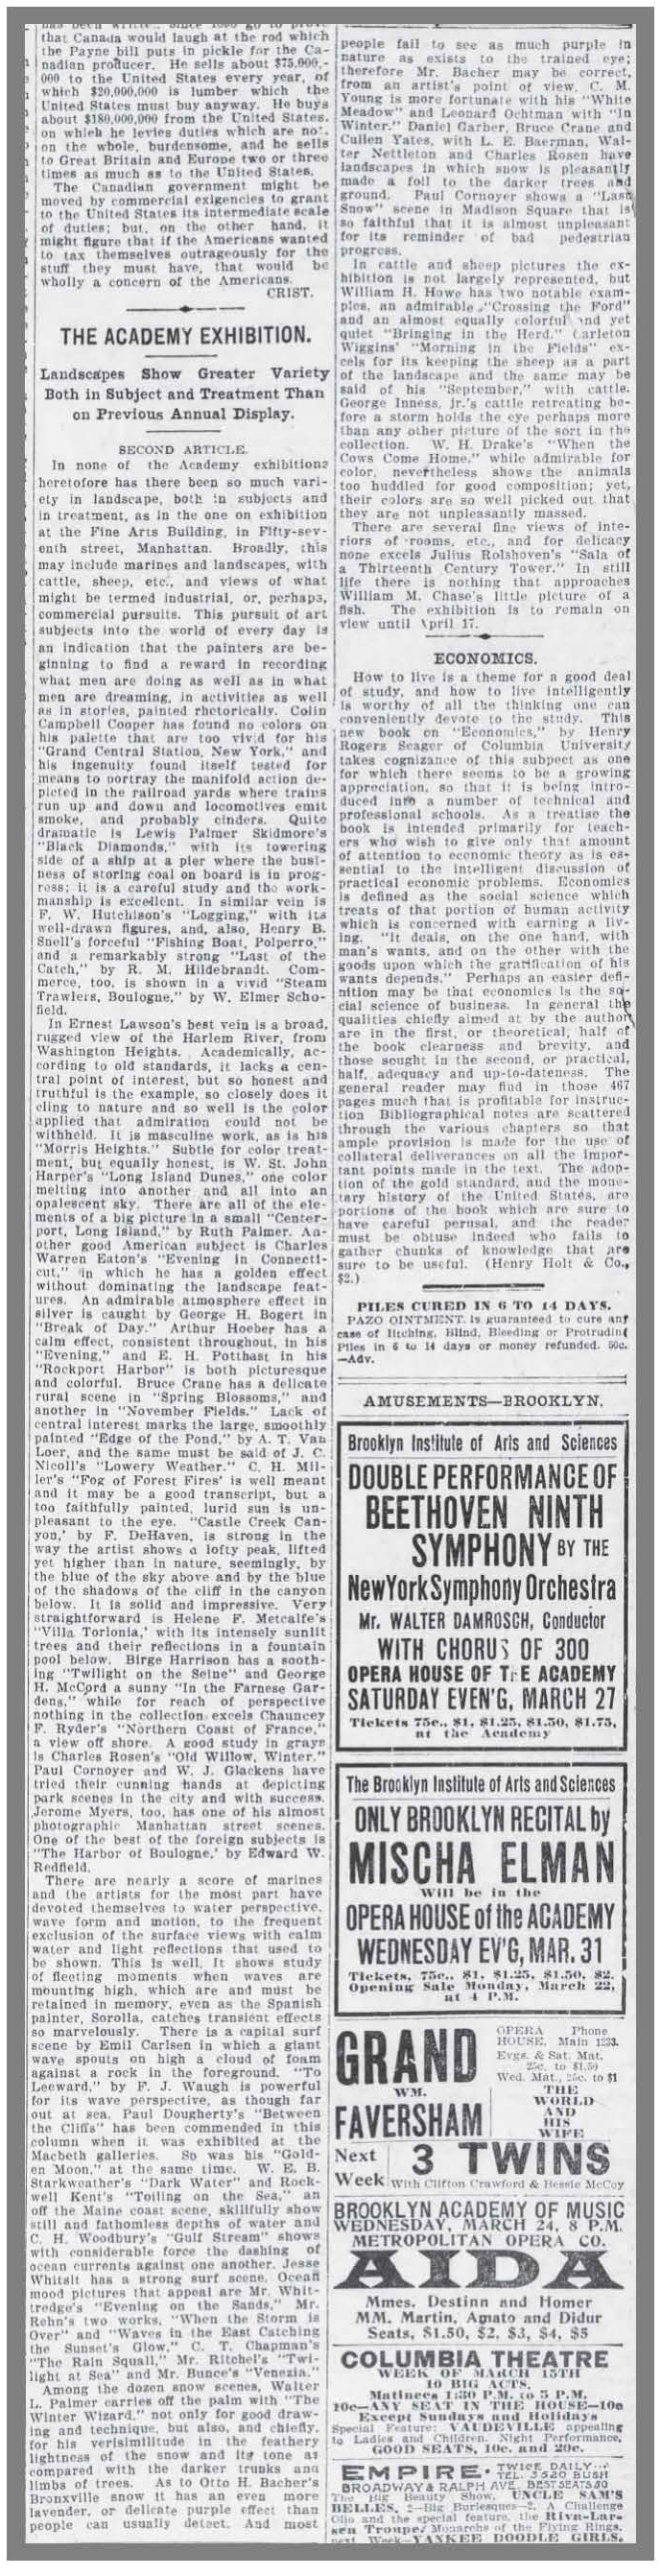 """The Brooklyn Daily Eagle, Brooklyn, NY, """"The Academy Exhibition"""", March 20, 1909, Page 4"""